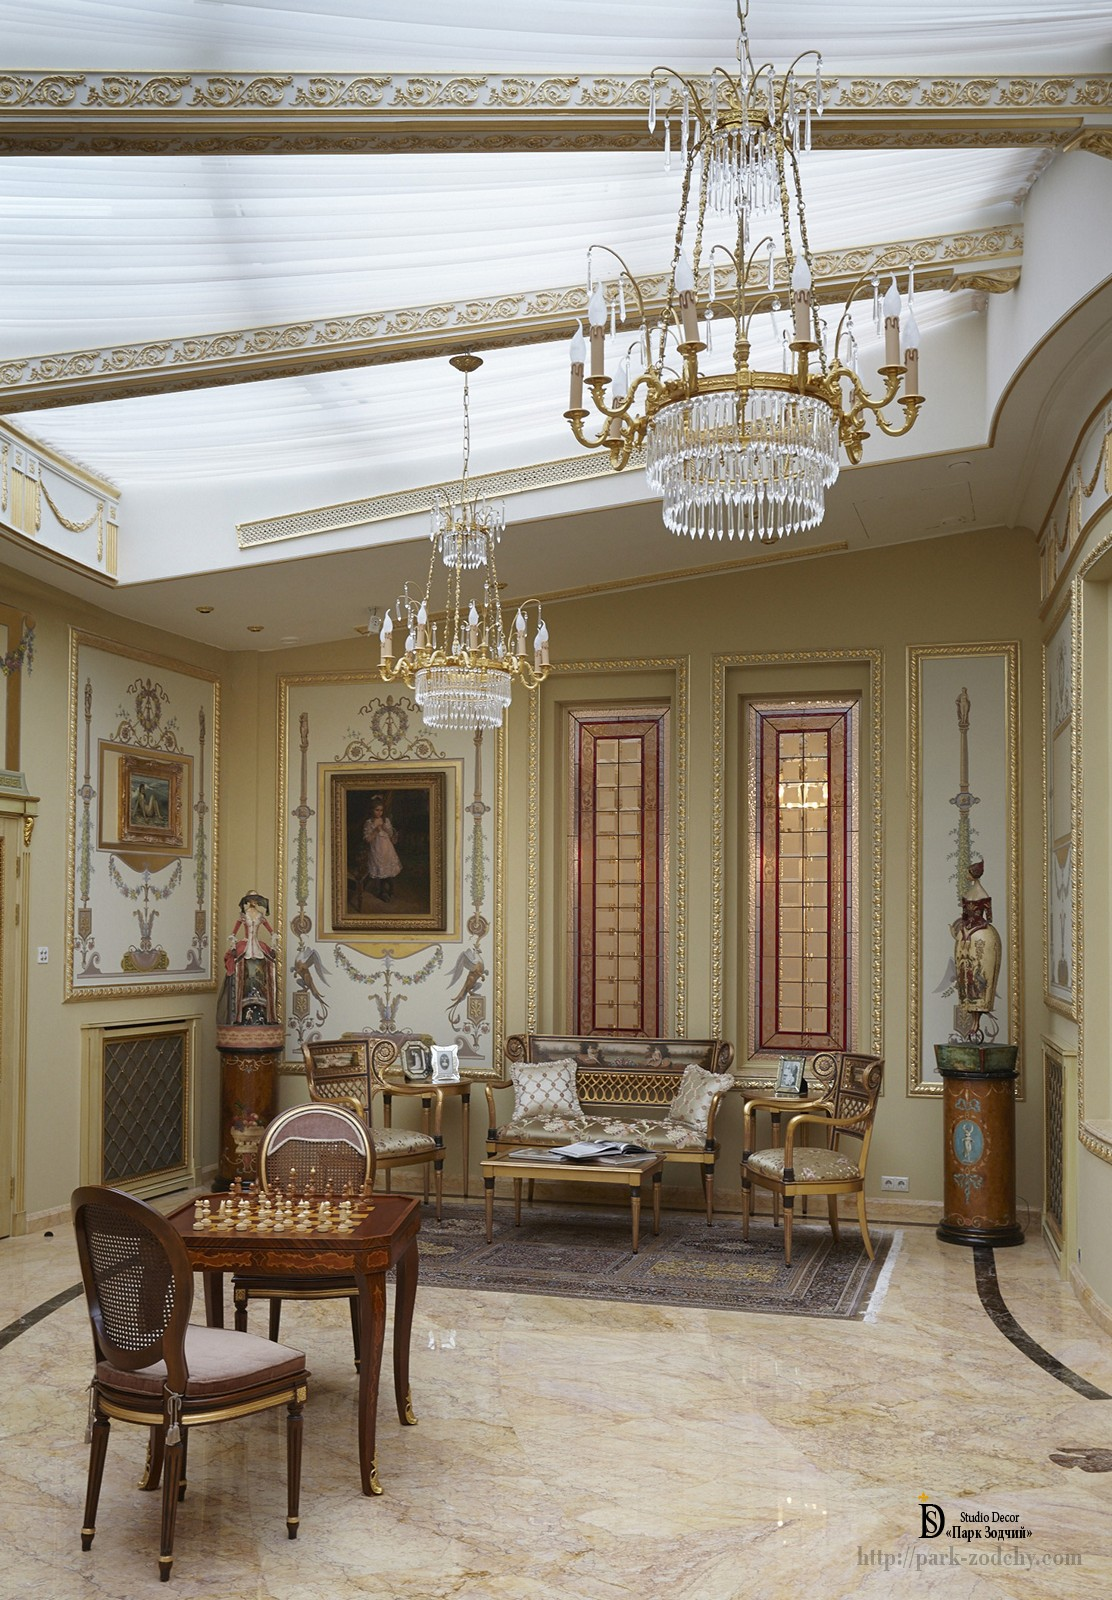 Lounge in classic interior